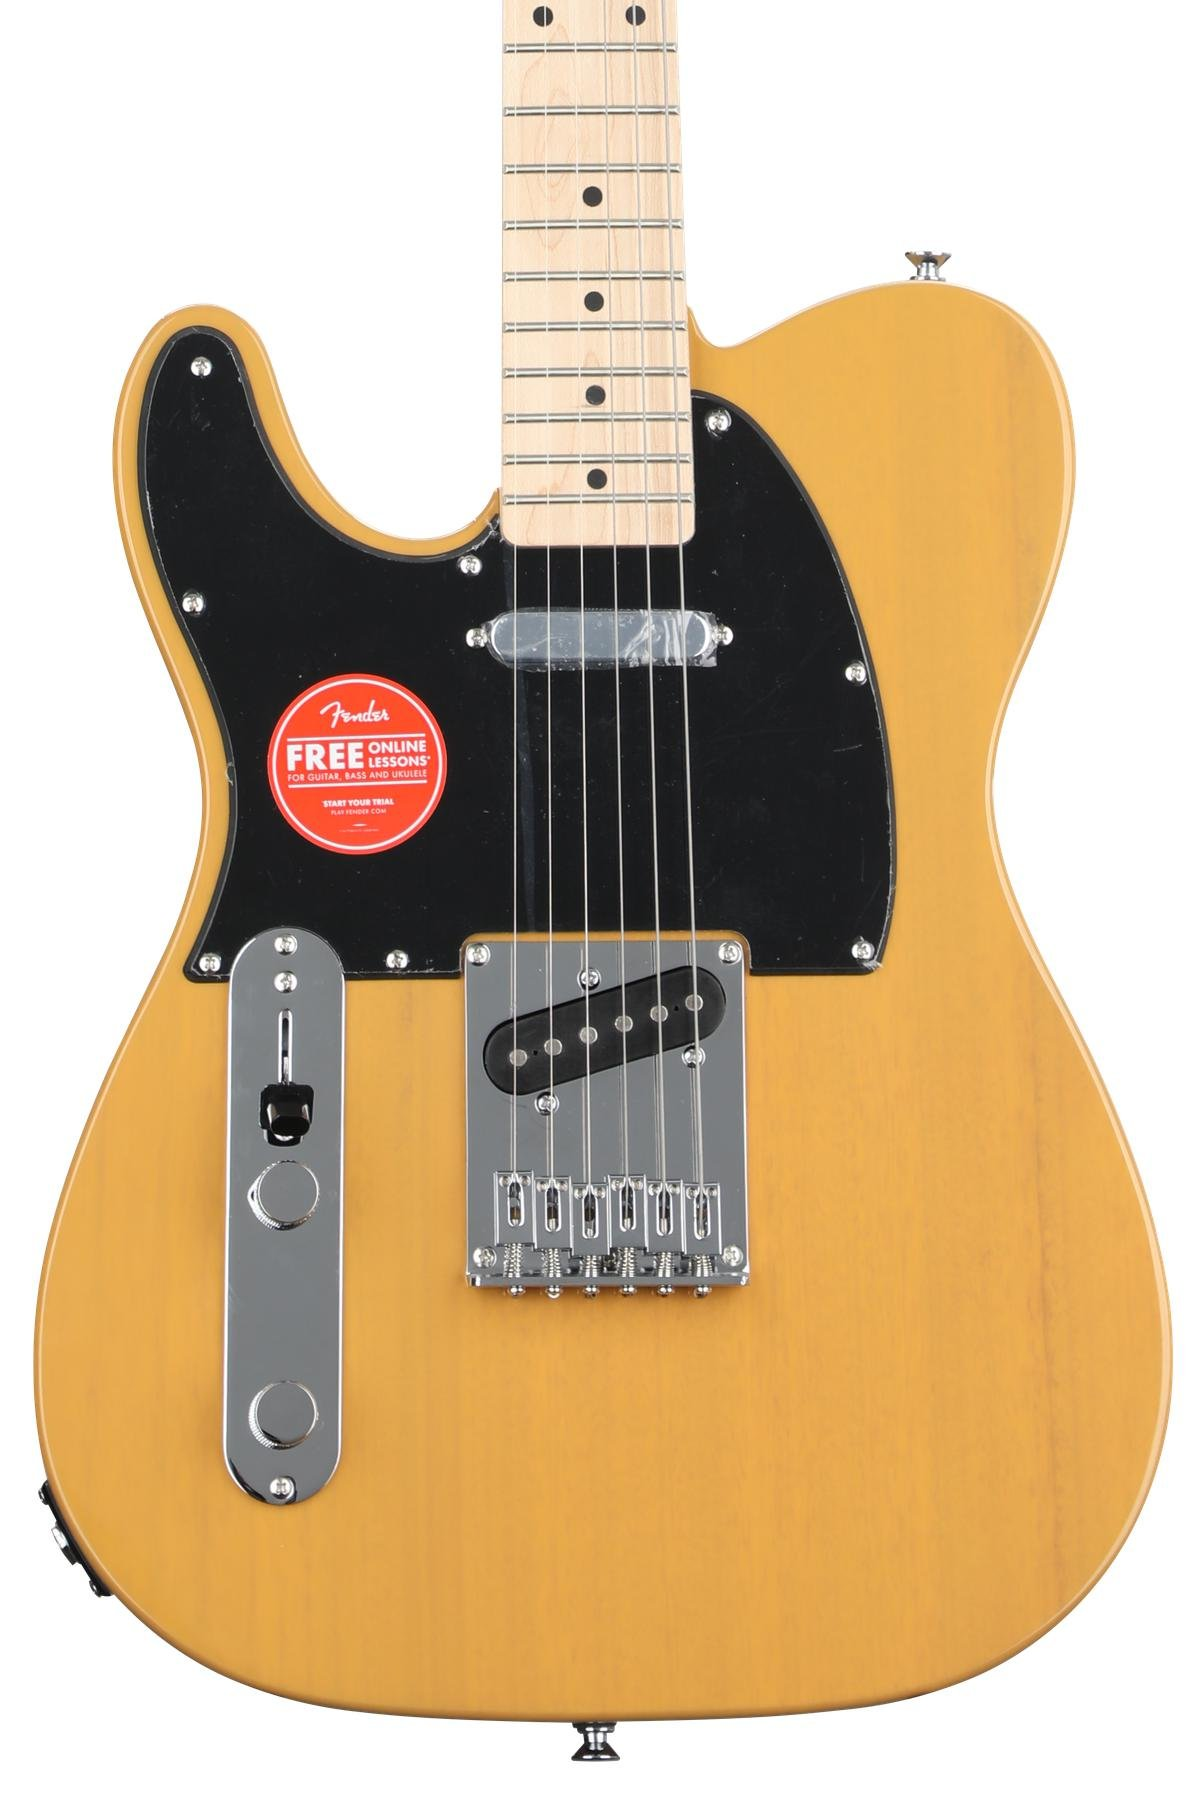 Jackson Js22 7 Wire Diagram Squier Affinity Series Telecaster Left Handed Butterscotch Blonde W Maple Fingerboard Image